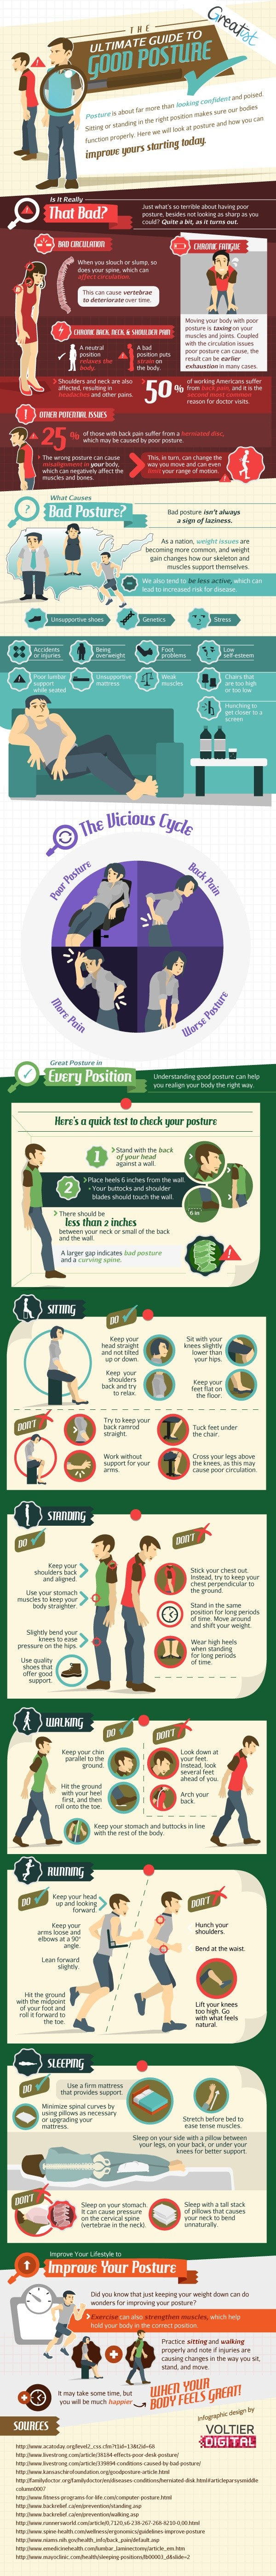 The-Ultimate-Guide-to-Good-Posture